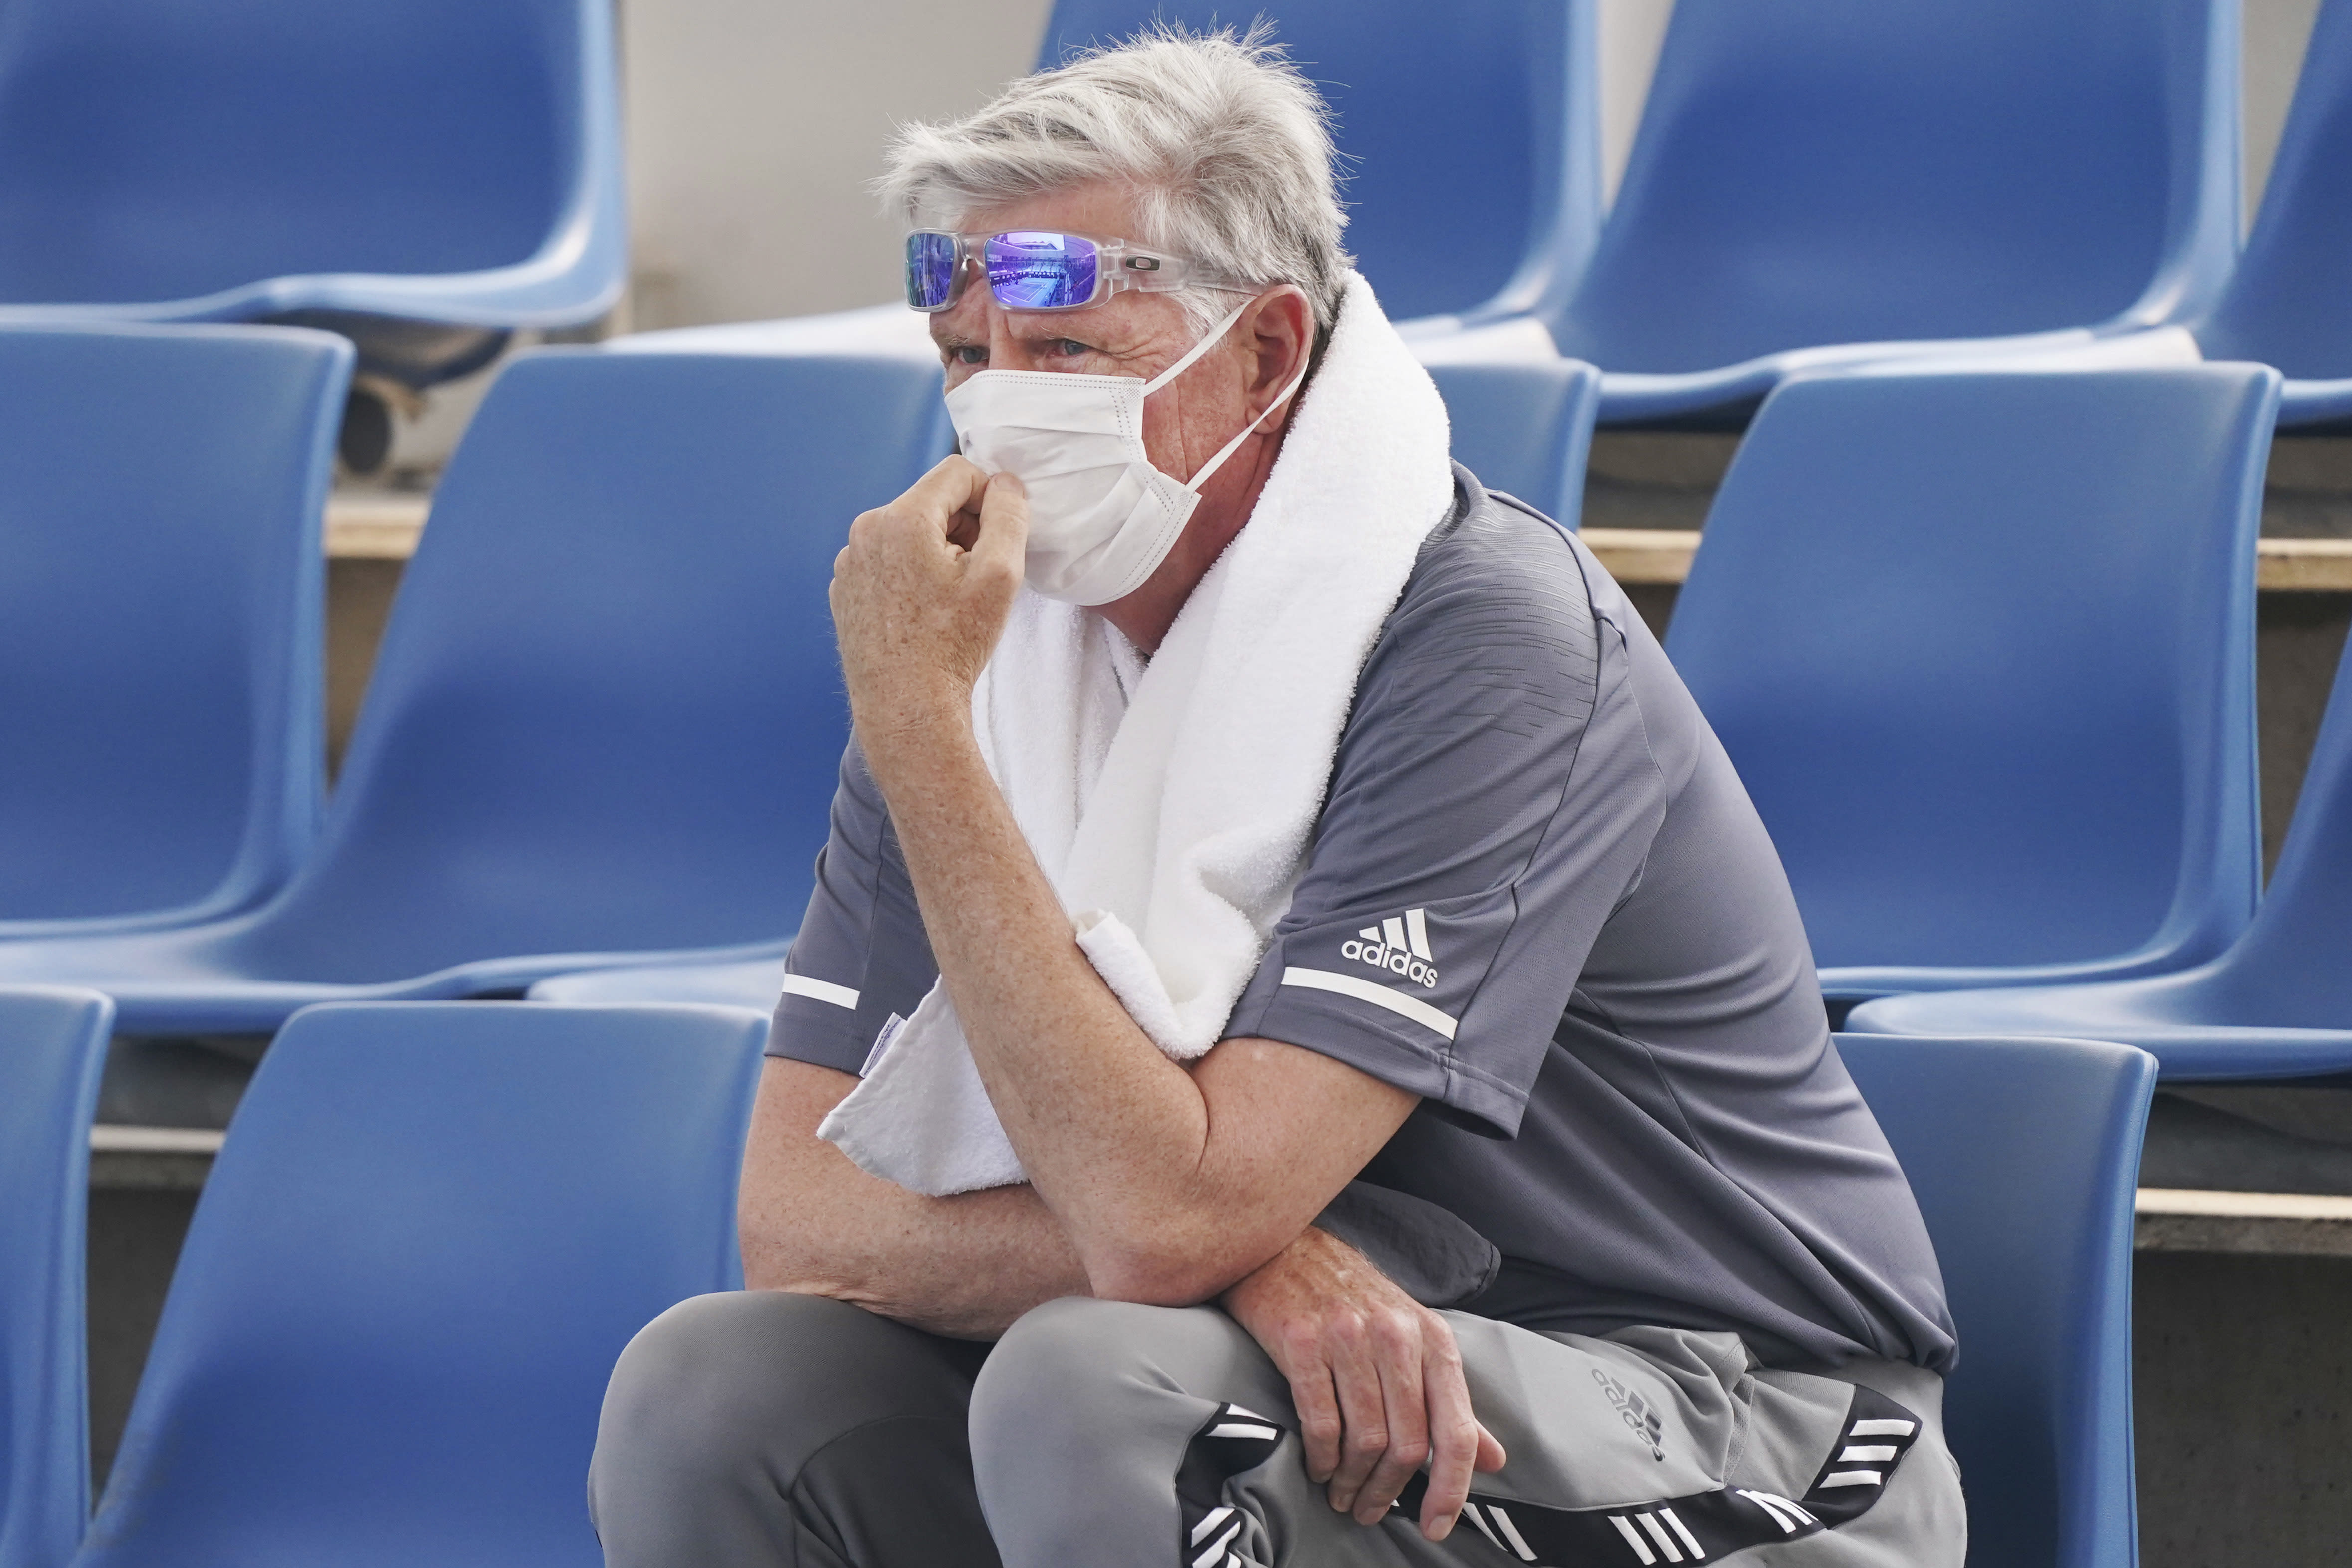 """A spectator wears a mask as smoke haze shrouds Melbourne during an Australian Open practice session at Melbourne Park in Australia, Tuesday, Jan. 14, 2020. Smoke haze and poor air quality caused by wildfires temporarily suspended practice sessions for the Australian Open at Melbourne Park on Tuesday, but qualifying began later in the morning in """"very poor"""" conditions and amid complaints by at least one player who was forced to forfeit her match. (Michael Dodge/AAP Image via AP)"""